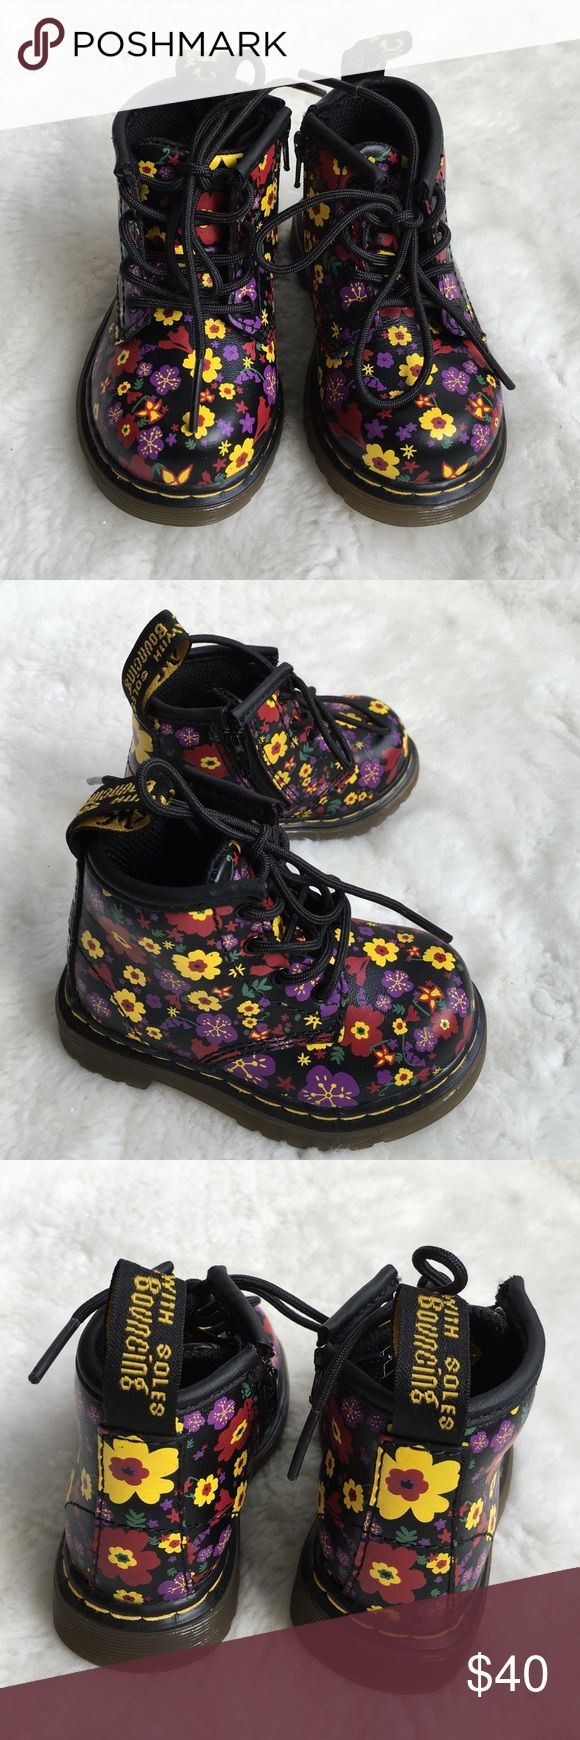 New Baby Dr. Martens Floral Boots size 4 US New without box Baby Dr. Martens Floral Boots size 4 US. Too Cute!! Please look at pictures for better reference. Happy shopping!! Dr. Martens Shoes Baby & Walker